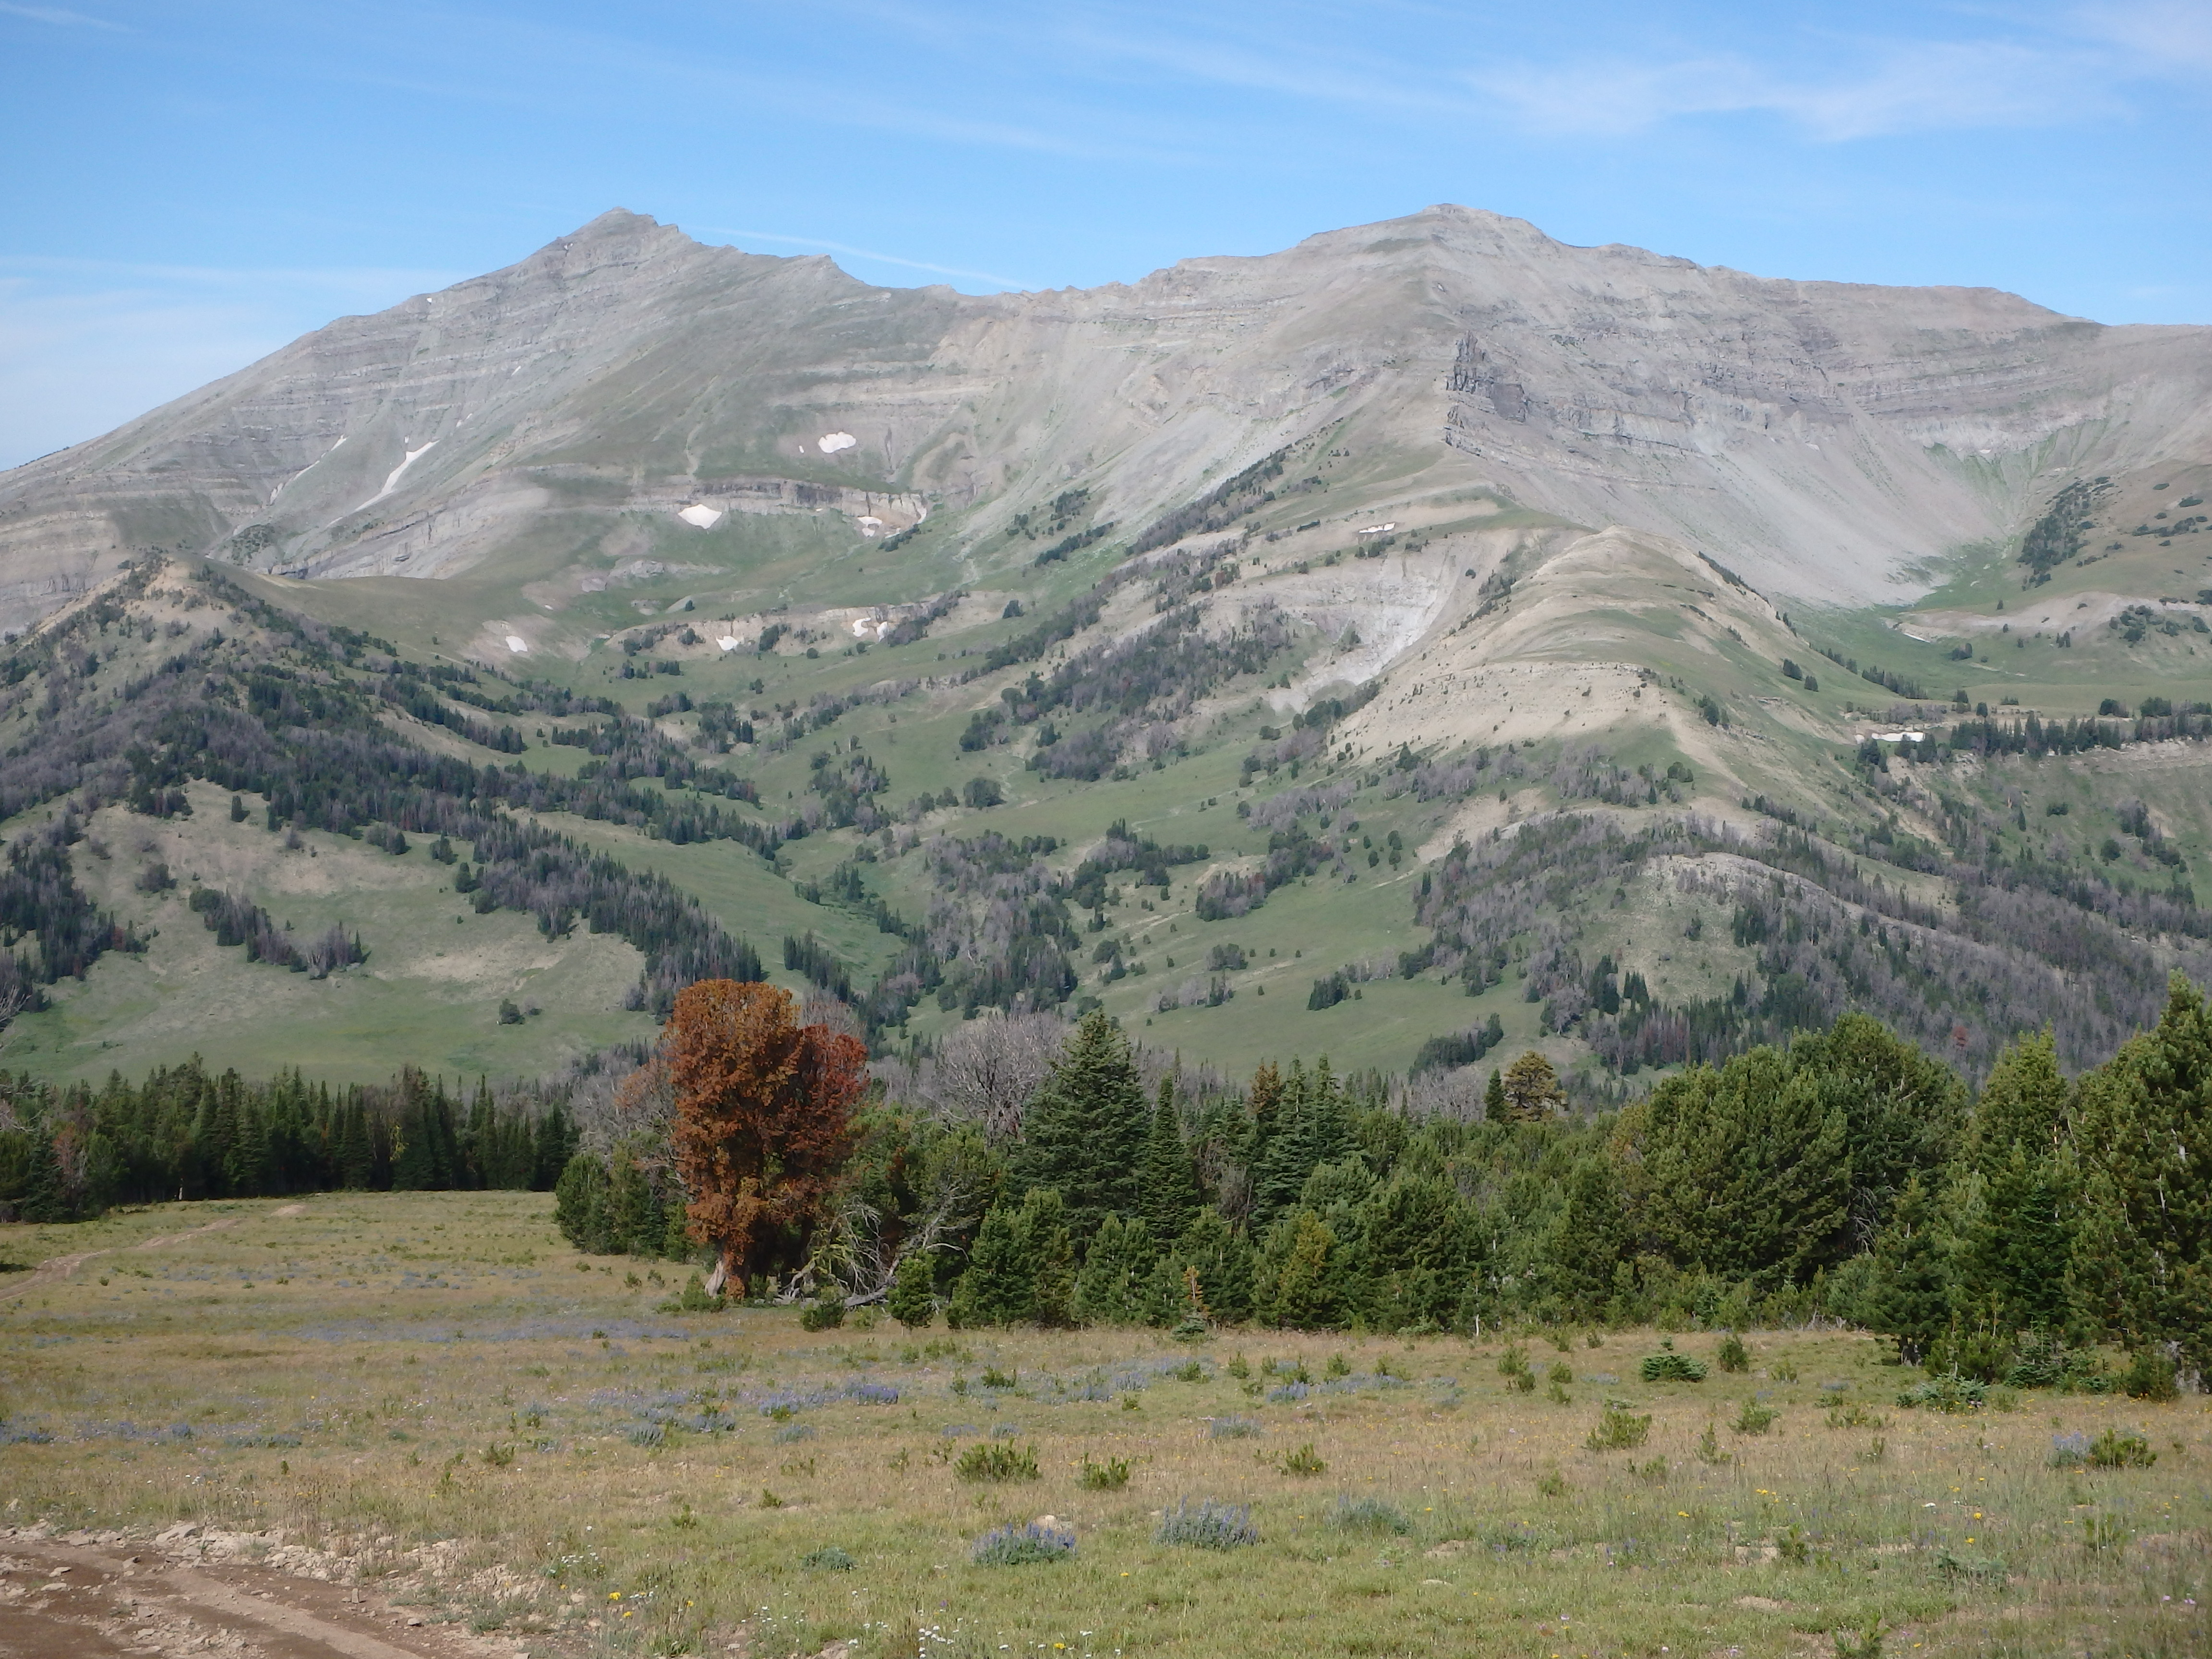 A vista from the Greater Yellowstone Area.